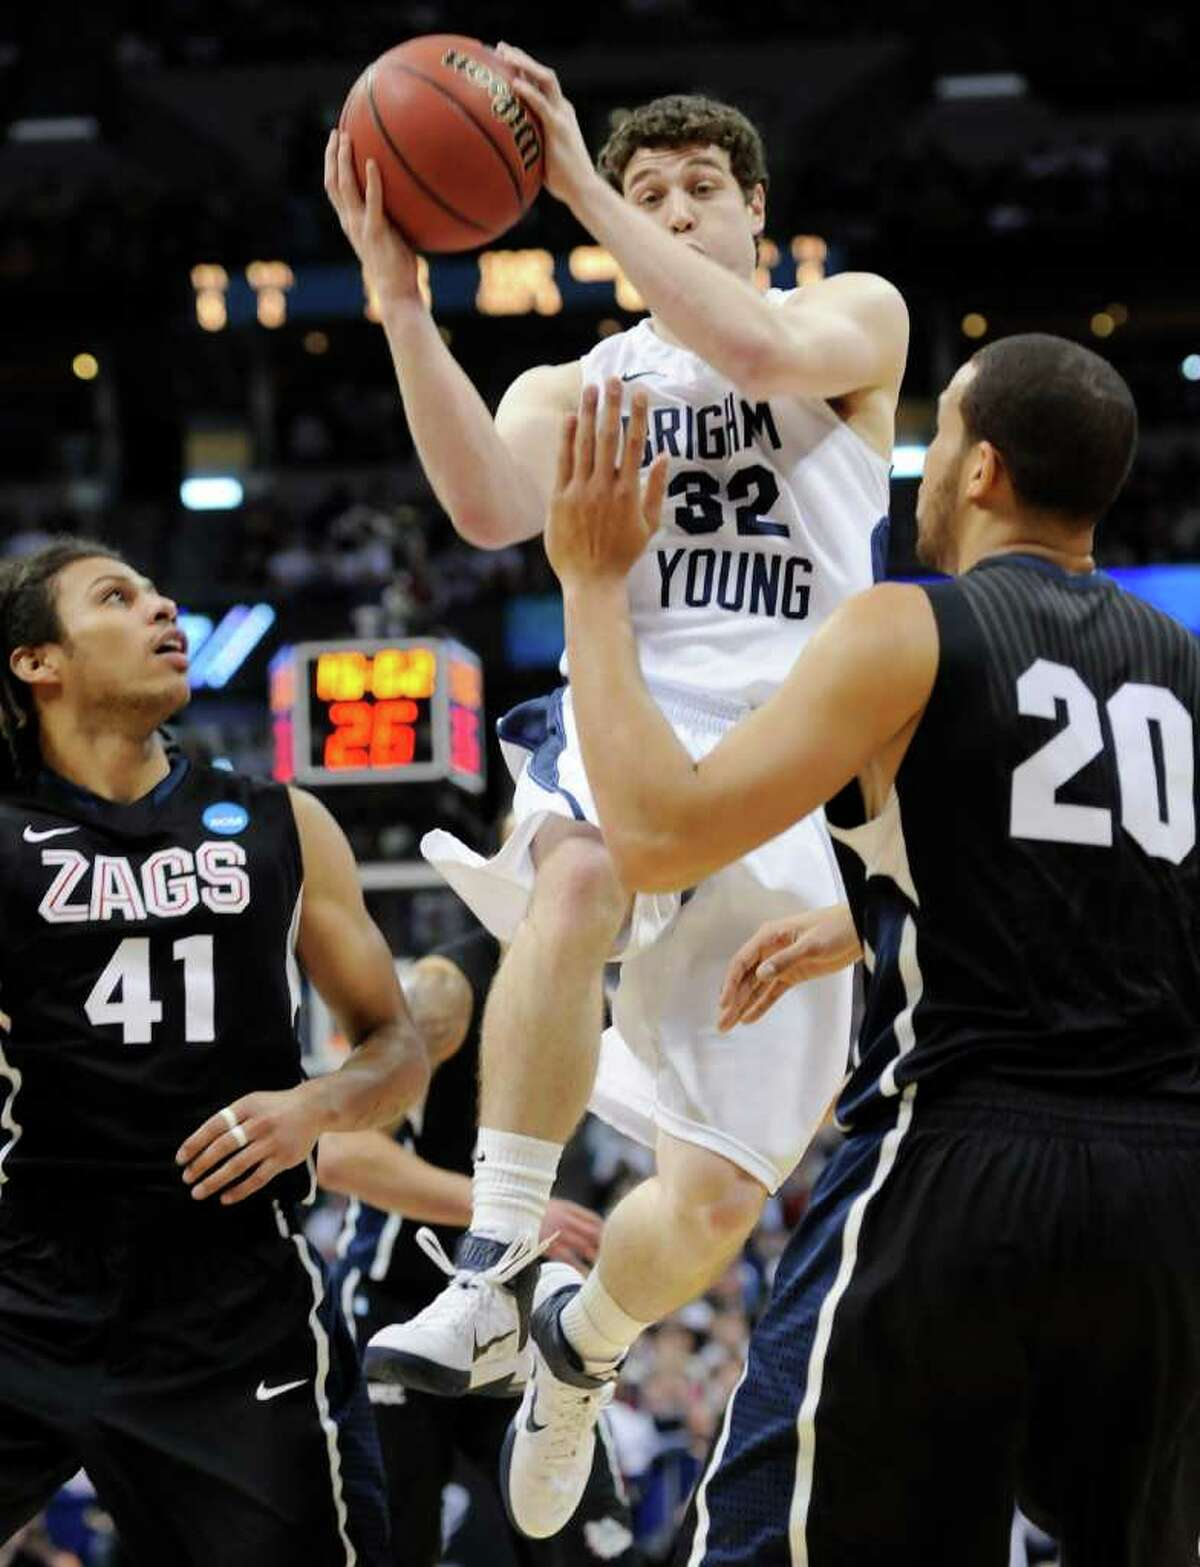 BYU guard Jimmer Fredette, a member of the Times Union Mount Rushmore of men's basketball, goes up for a shot against Gonzaga guard Steven Gray (41) and Gonzaga forward Elias Harris (20) in the first half of a Southeast regional third-round NCAA Tournament game, Saturday, March 19, 2011, in Denver. (AP Photo/Jack Dempsey)